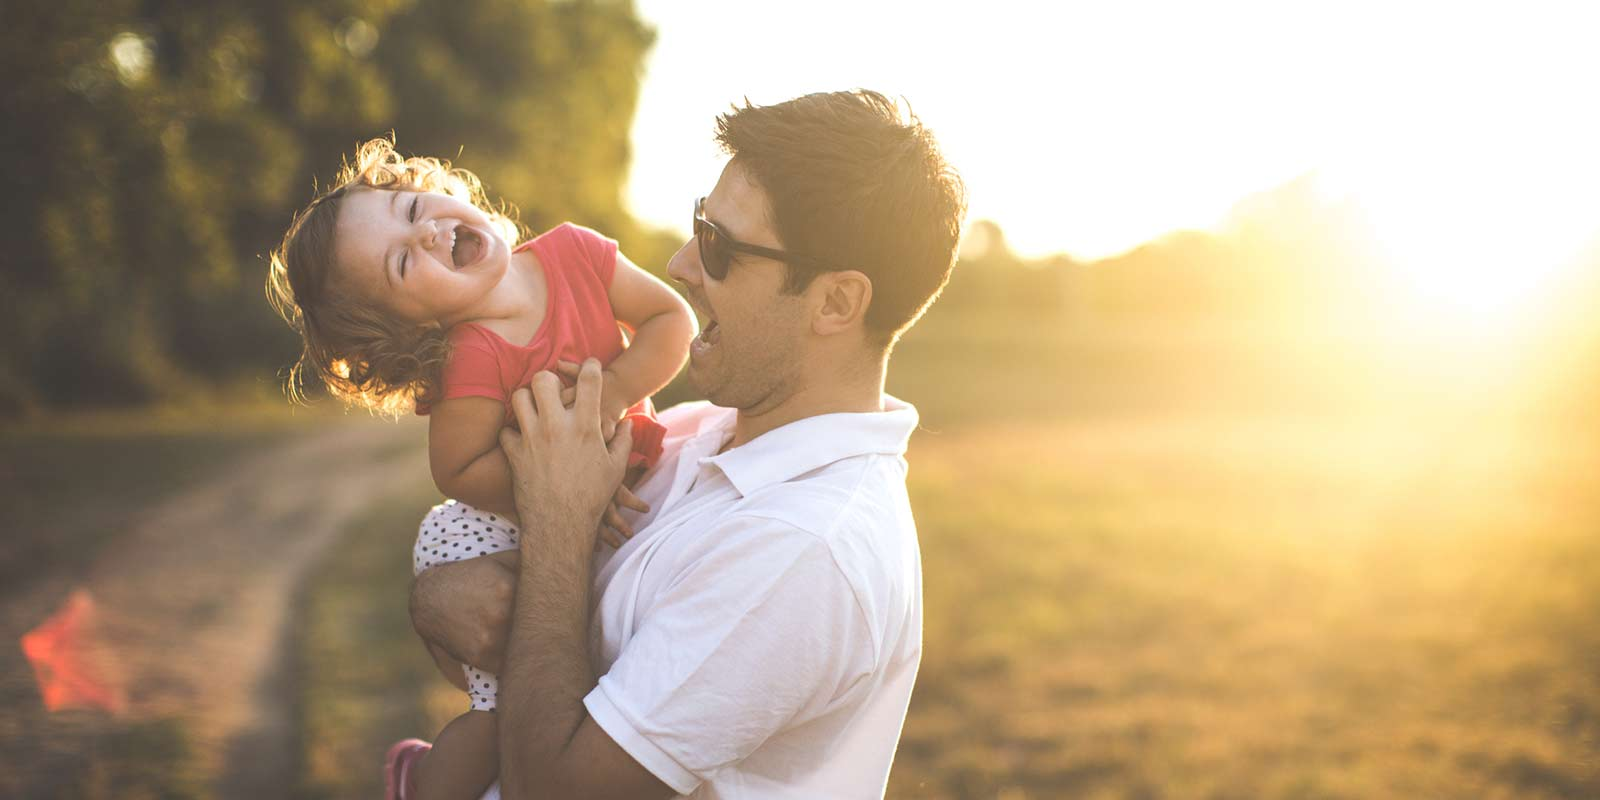 A little girl laughs as her father tickles her tummy in the sunset.